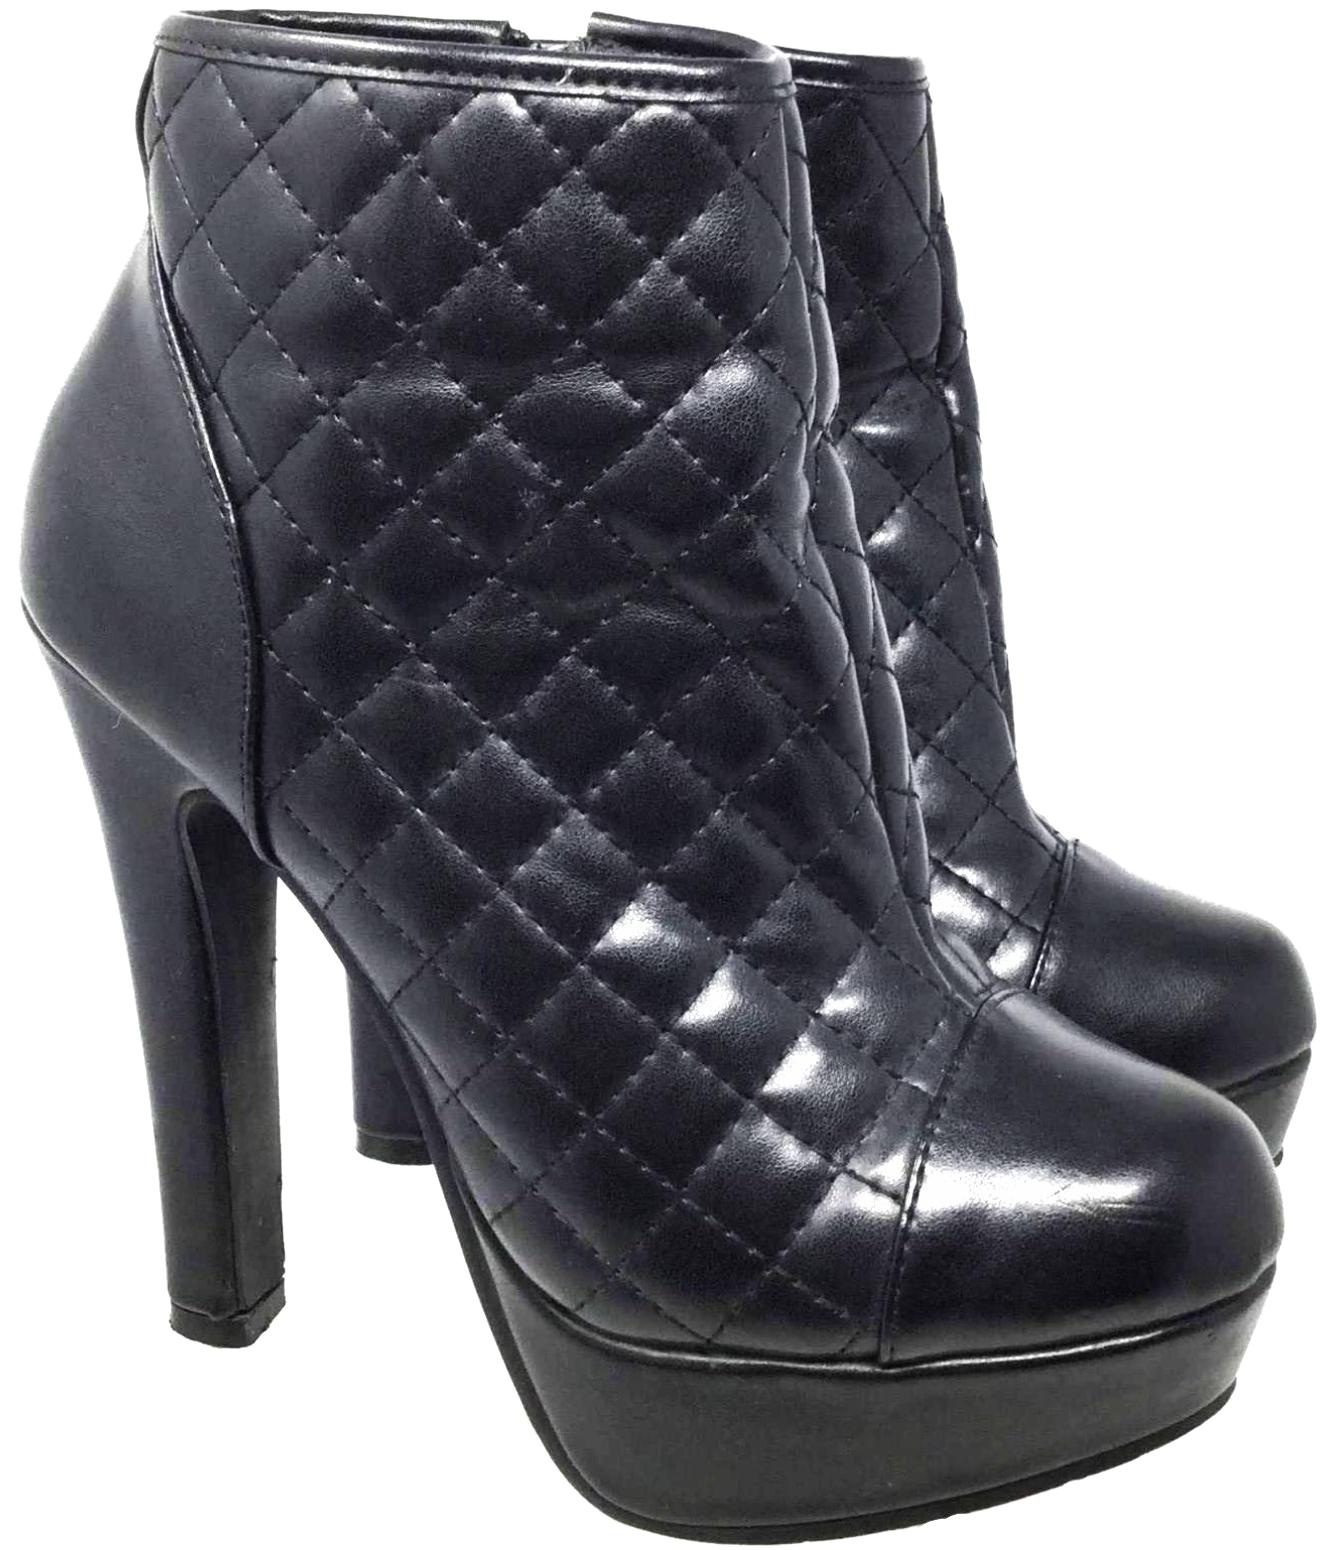 Steve Madden Black Women's Ankle 6.5/Eu37 Synthetic Boots/Booties Size US 6.5 Regular (M, B)